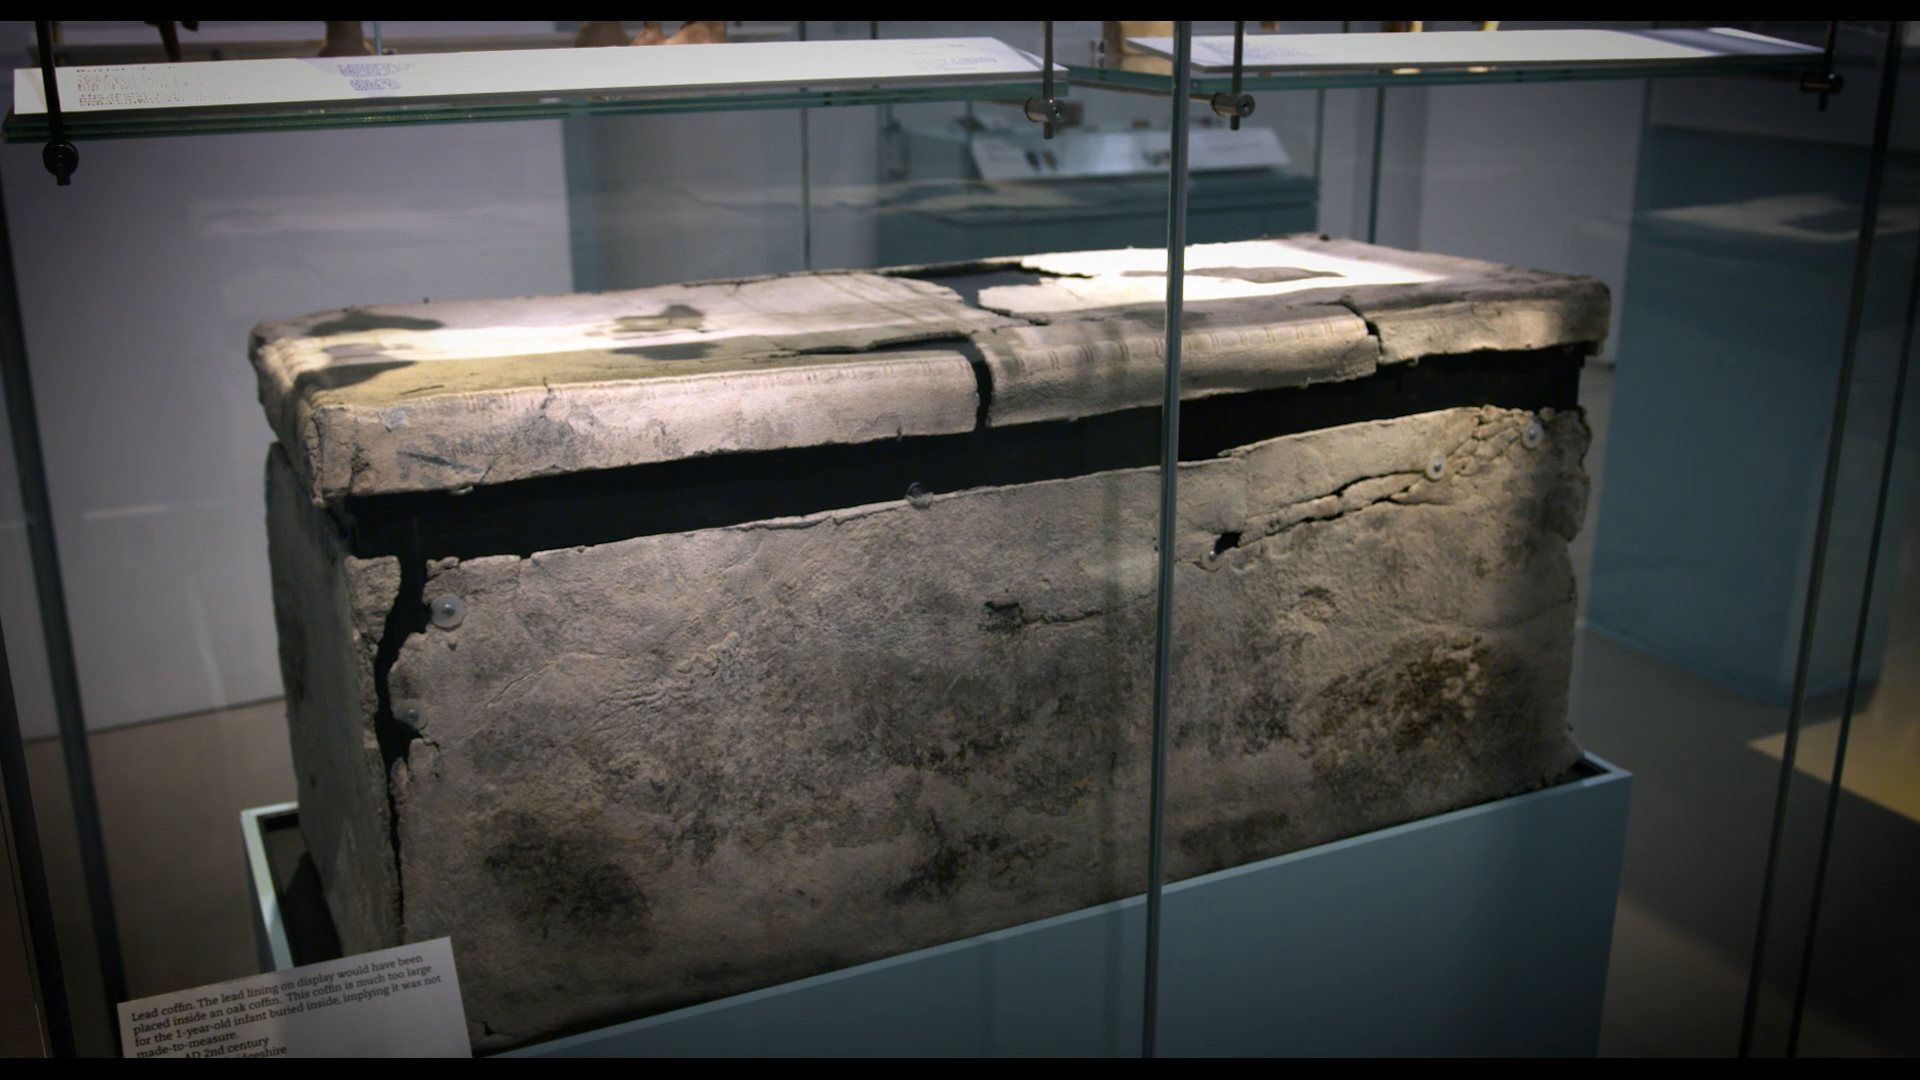 A small lead coffin